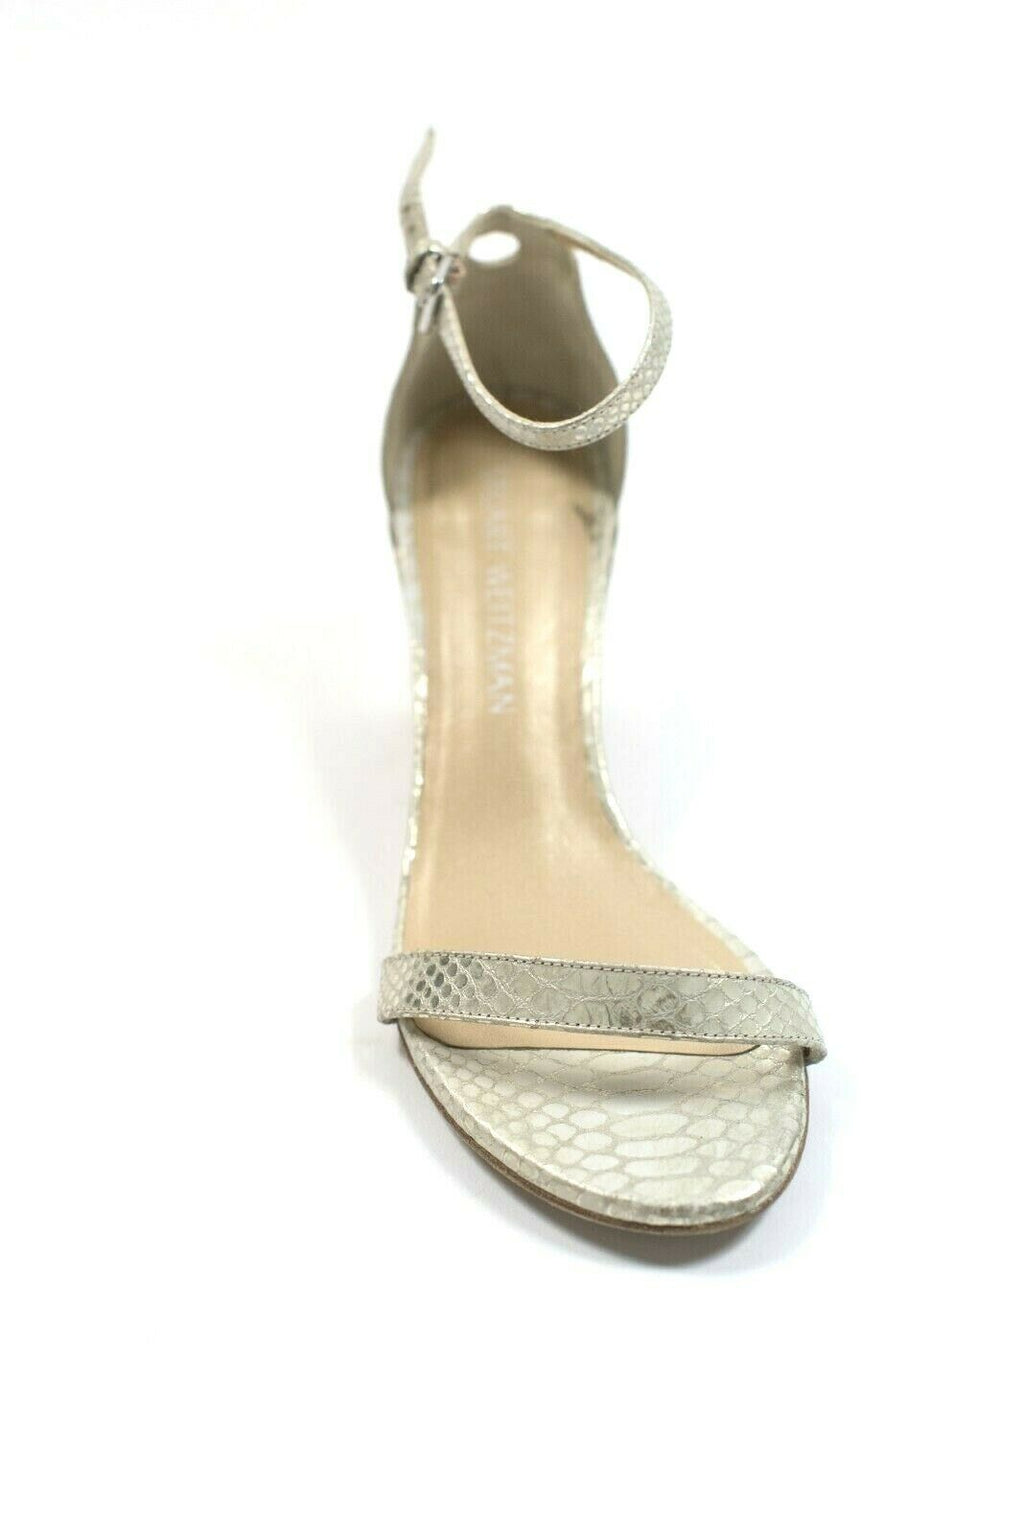 Stuart Weitzman Simple Heel Sandals Size 6.5